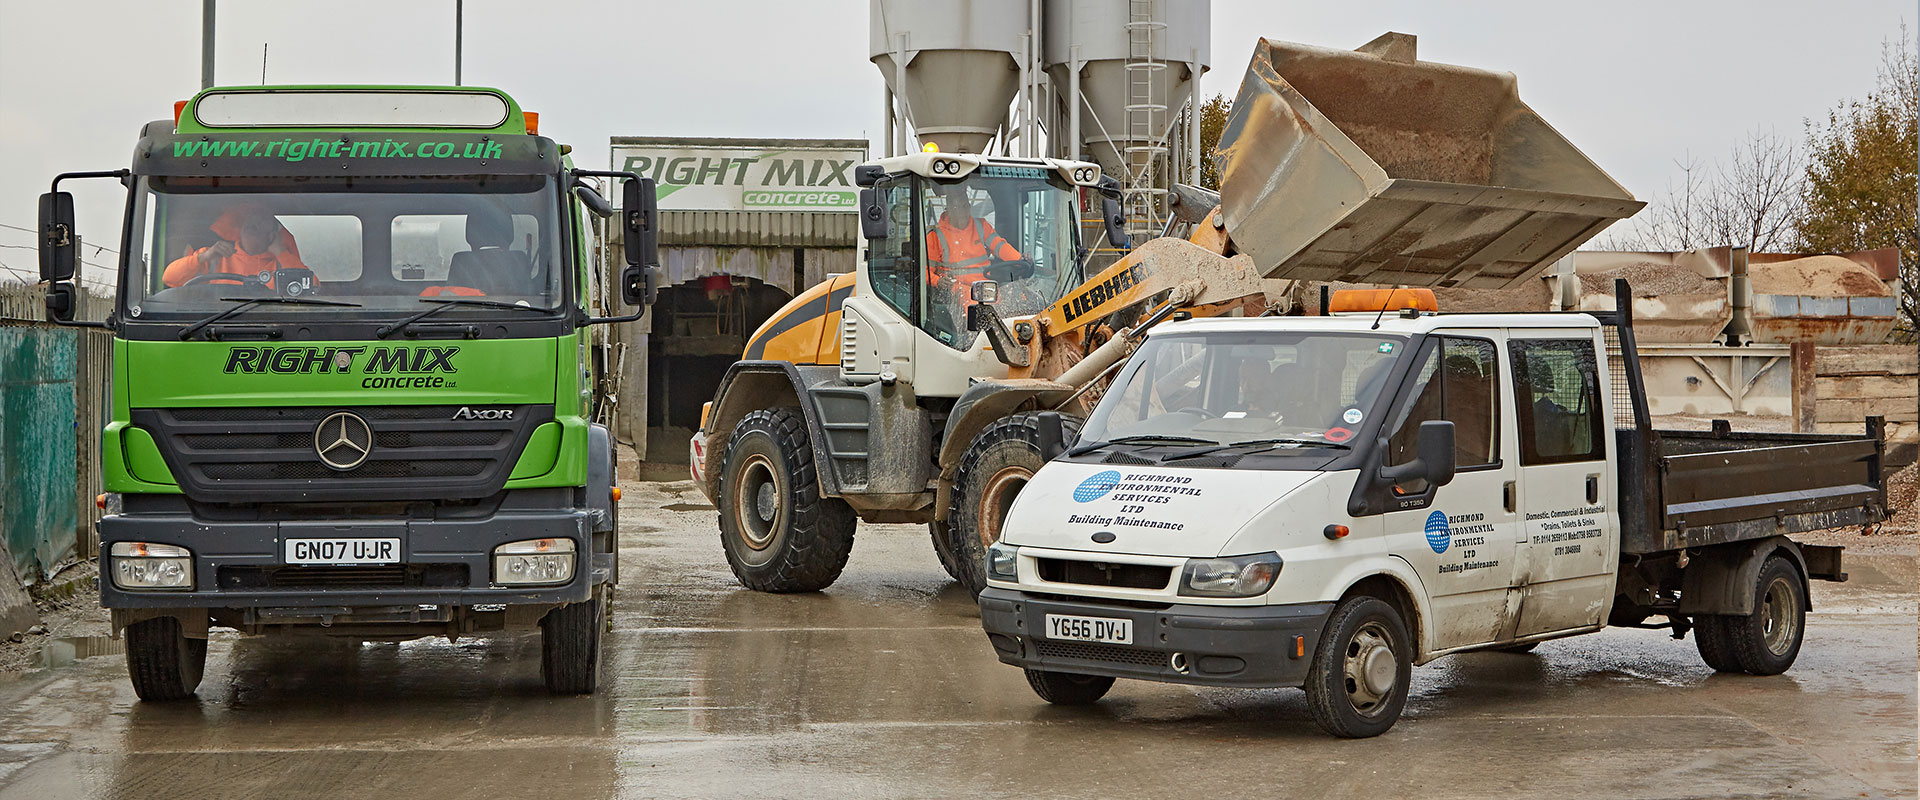 Concrete Collection Services from Right Mix